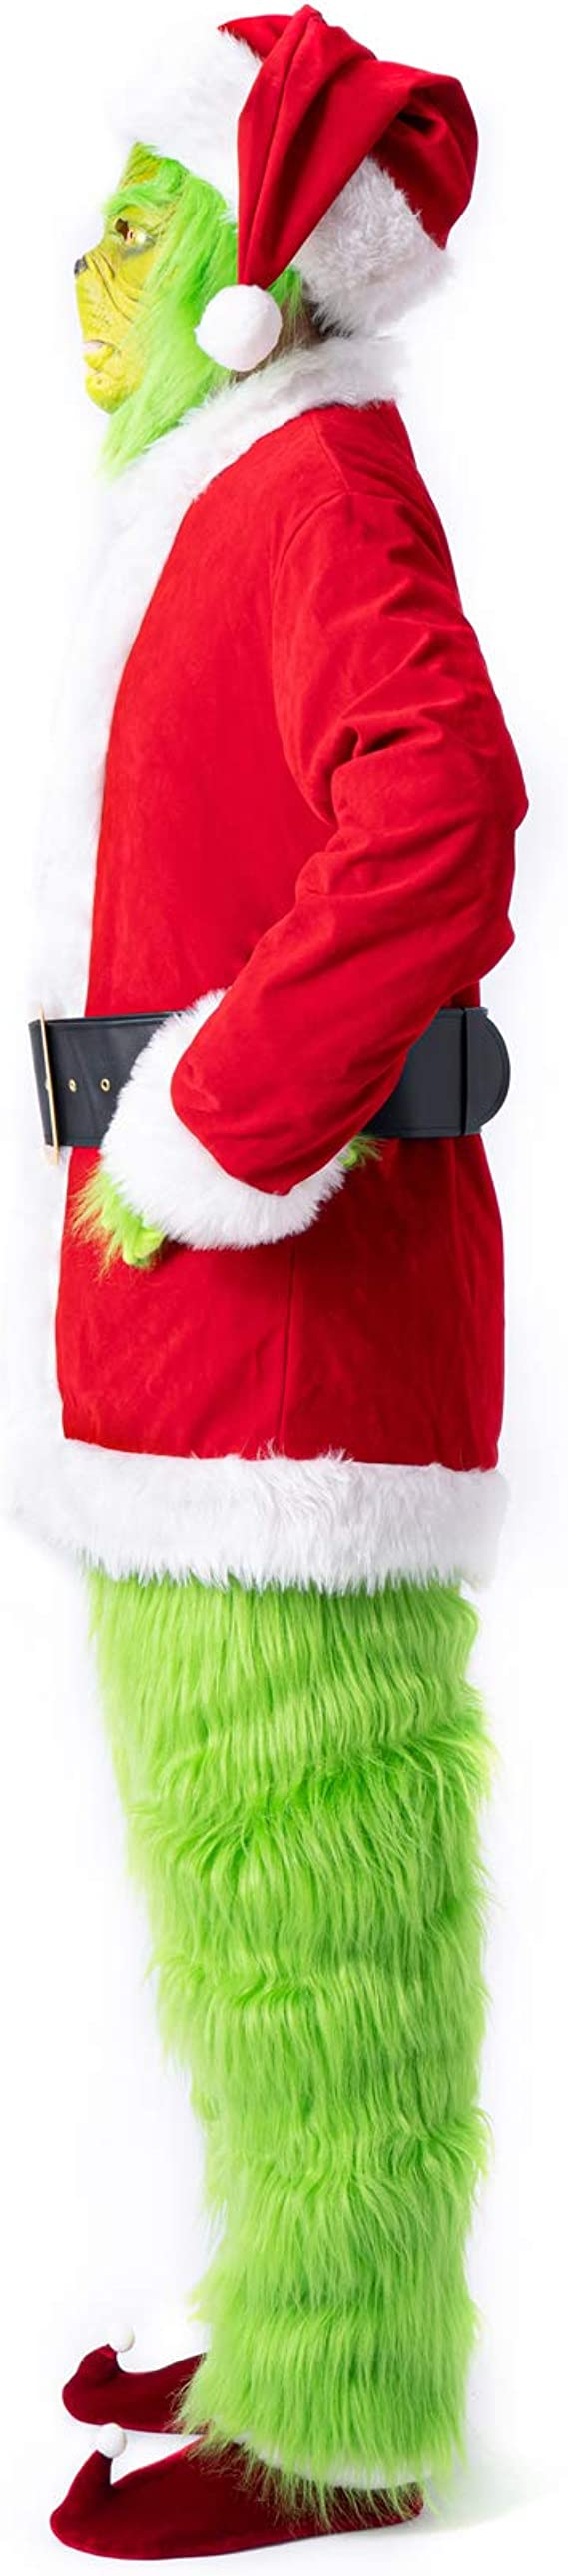 Grinch Costume for Men 7pcs Christmas Santa Suit Deluxe Furry Adult with Grinch Mask